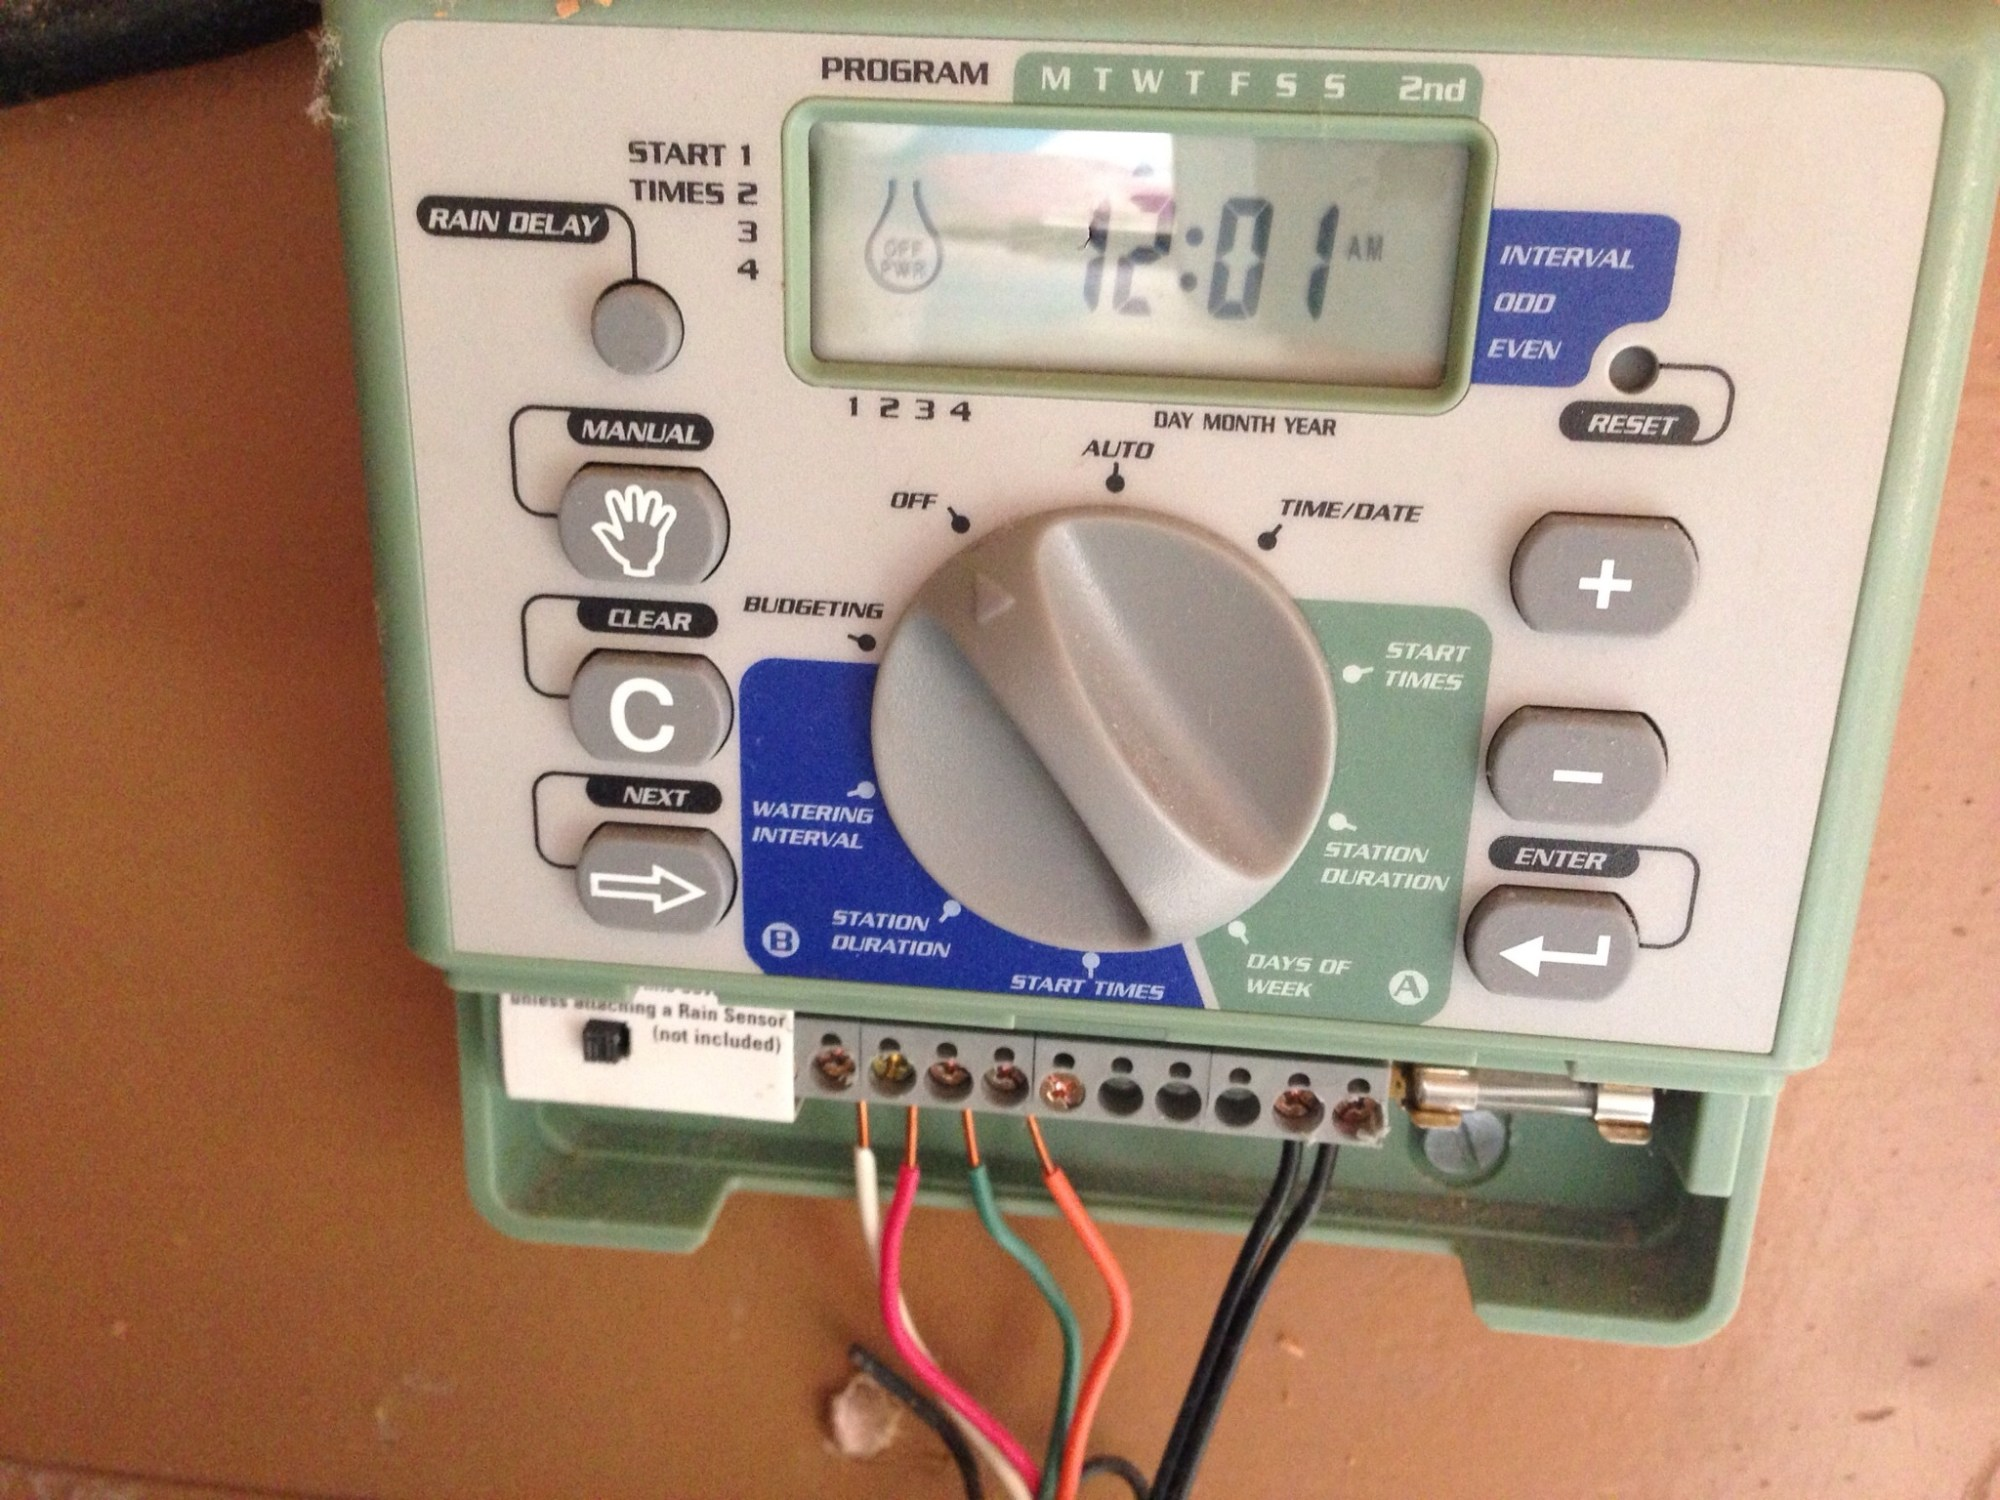 hight resolution of tested opensprinkler 2 0 arduino based irrigation controller tested electronic controller wired to sprinkler system